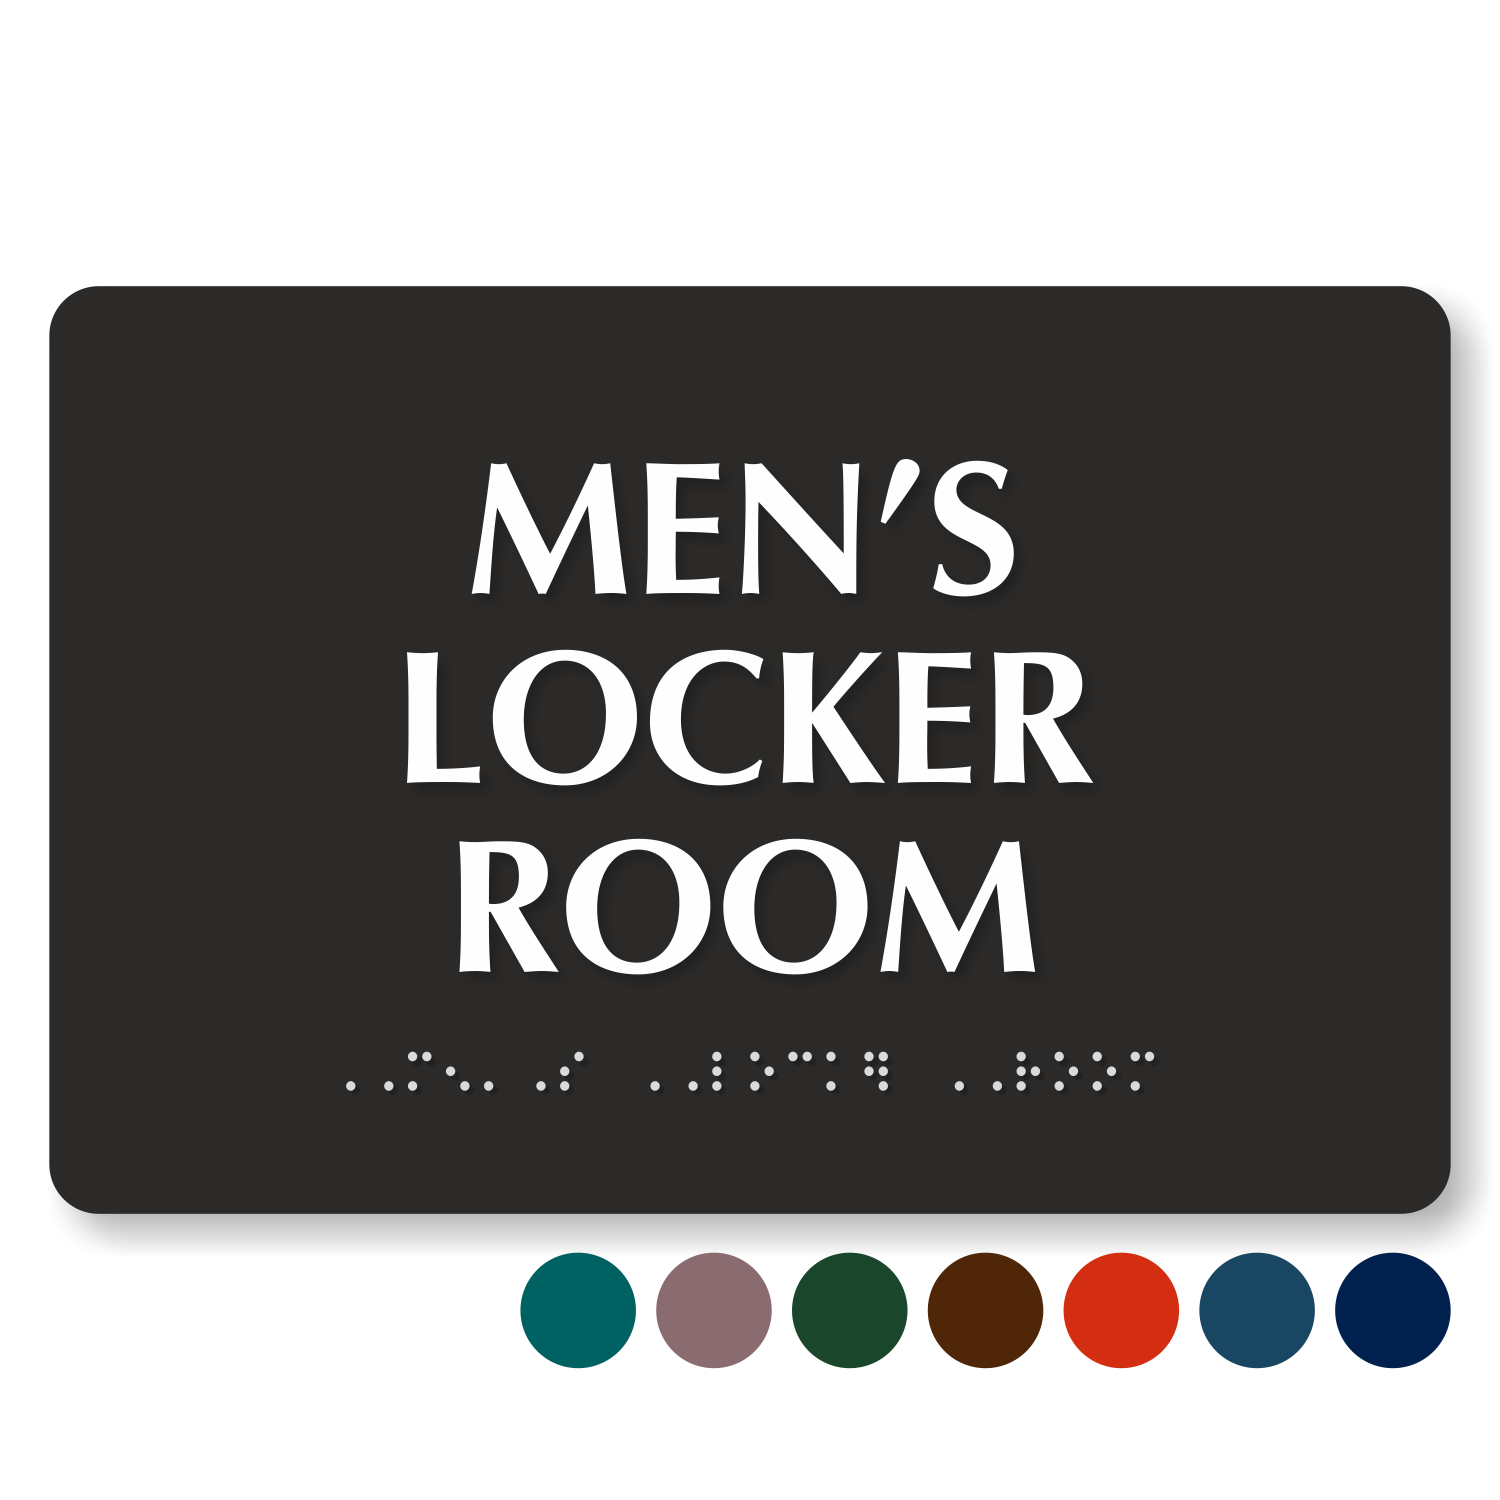 New Locker Room Signs - Men and Women Locker Room Signs RR95